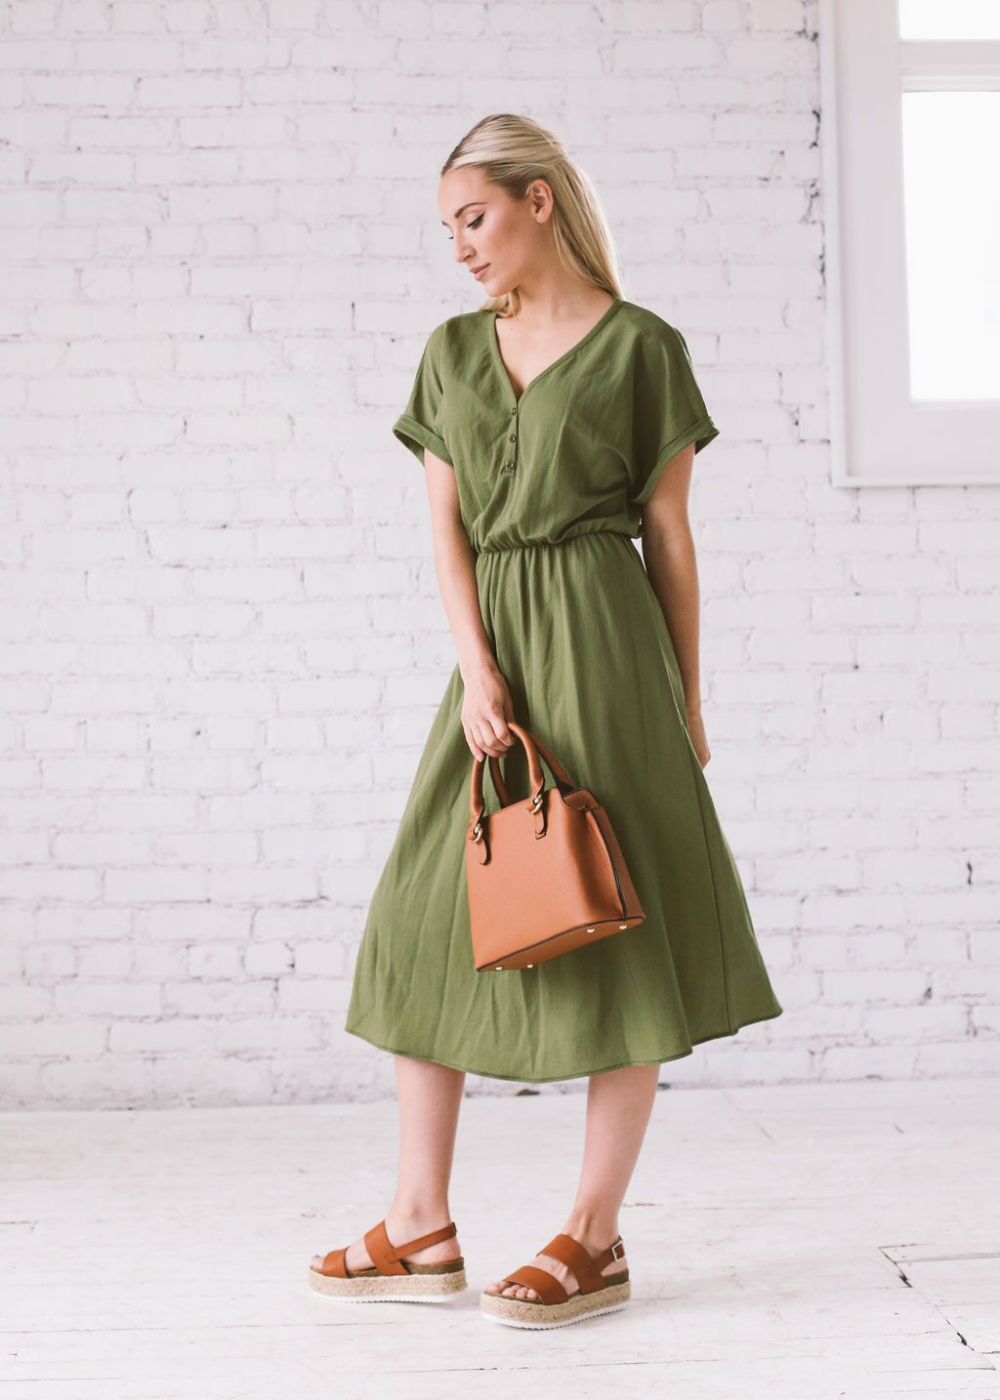 The Perfect Summer Day Dress For Every Girl With Any Style This Super Simple Midi Will Make Your Closet Complete Wi Summer Day Dresses Checkered Dress Dresses [ 1400 x 1000 Pixel ]